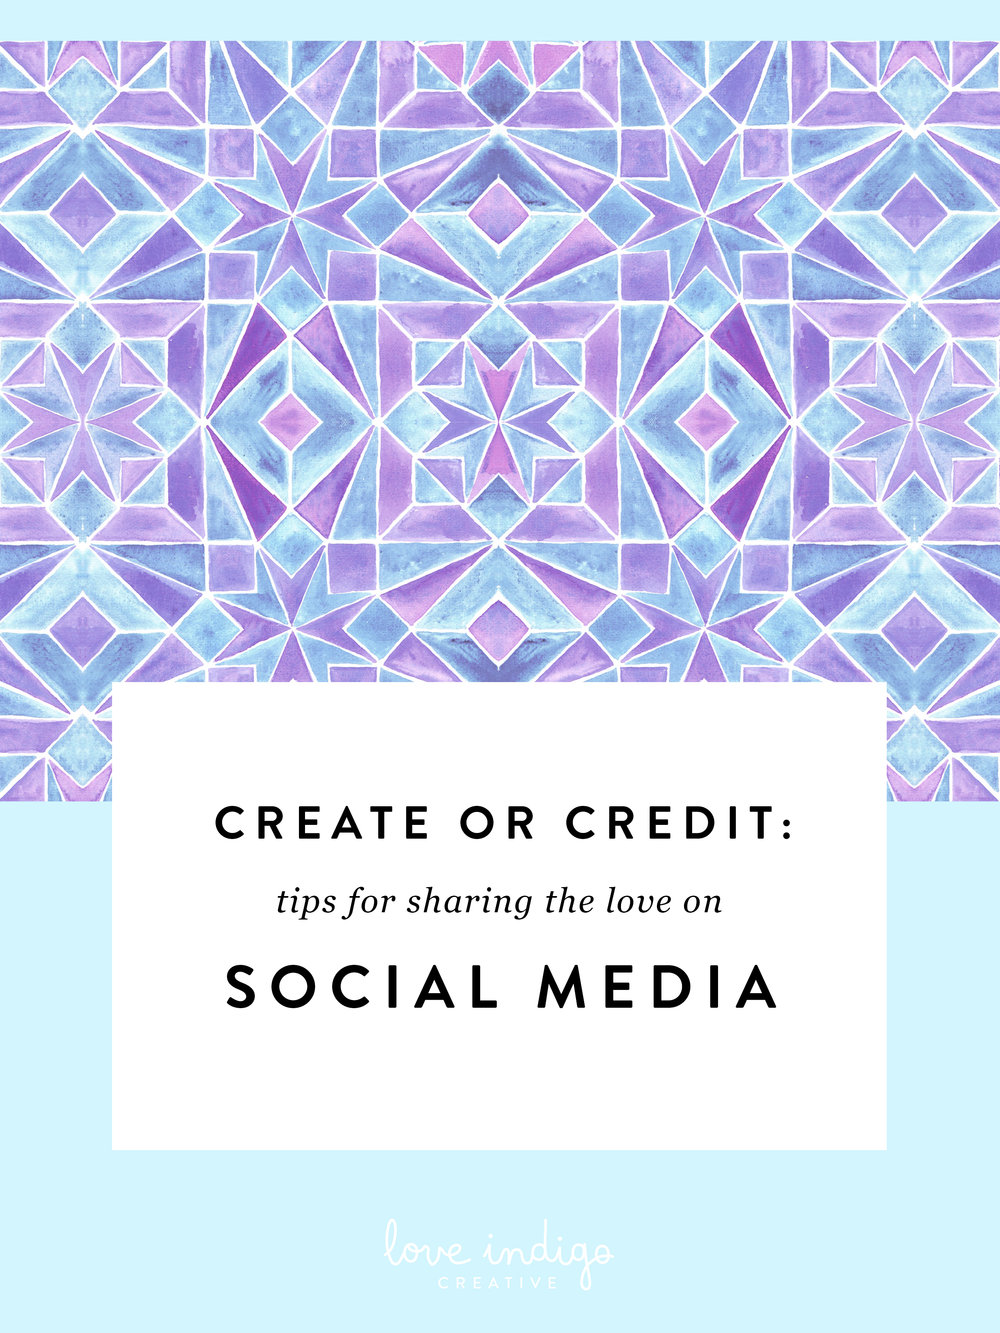 Create or Credit: Tips for Sharing the Love on Social Media | Love Indigo Creative